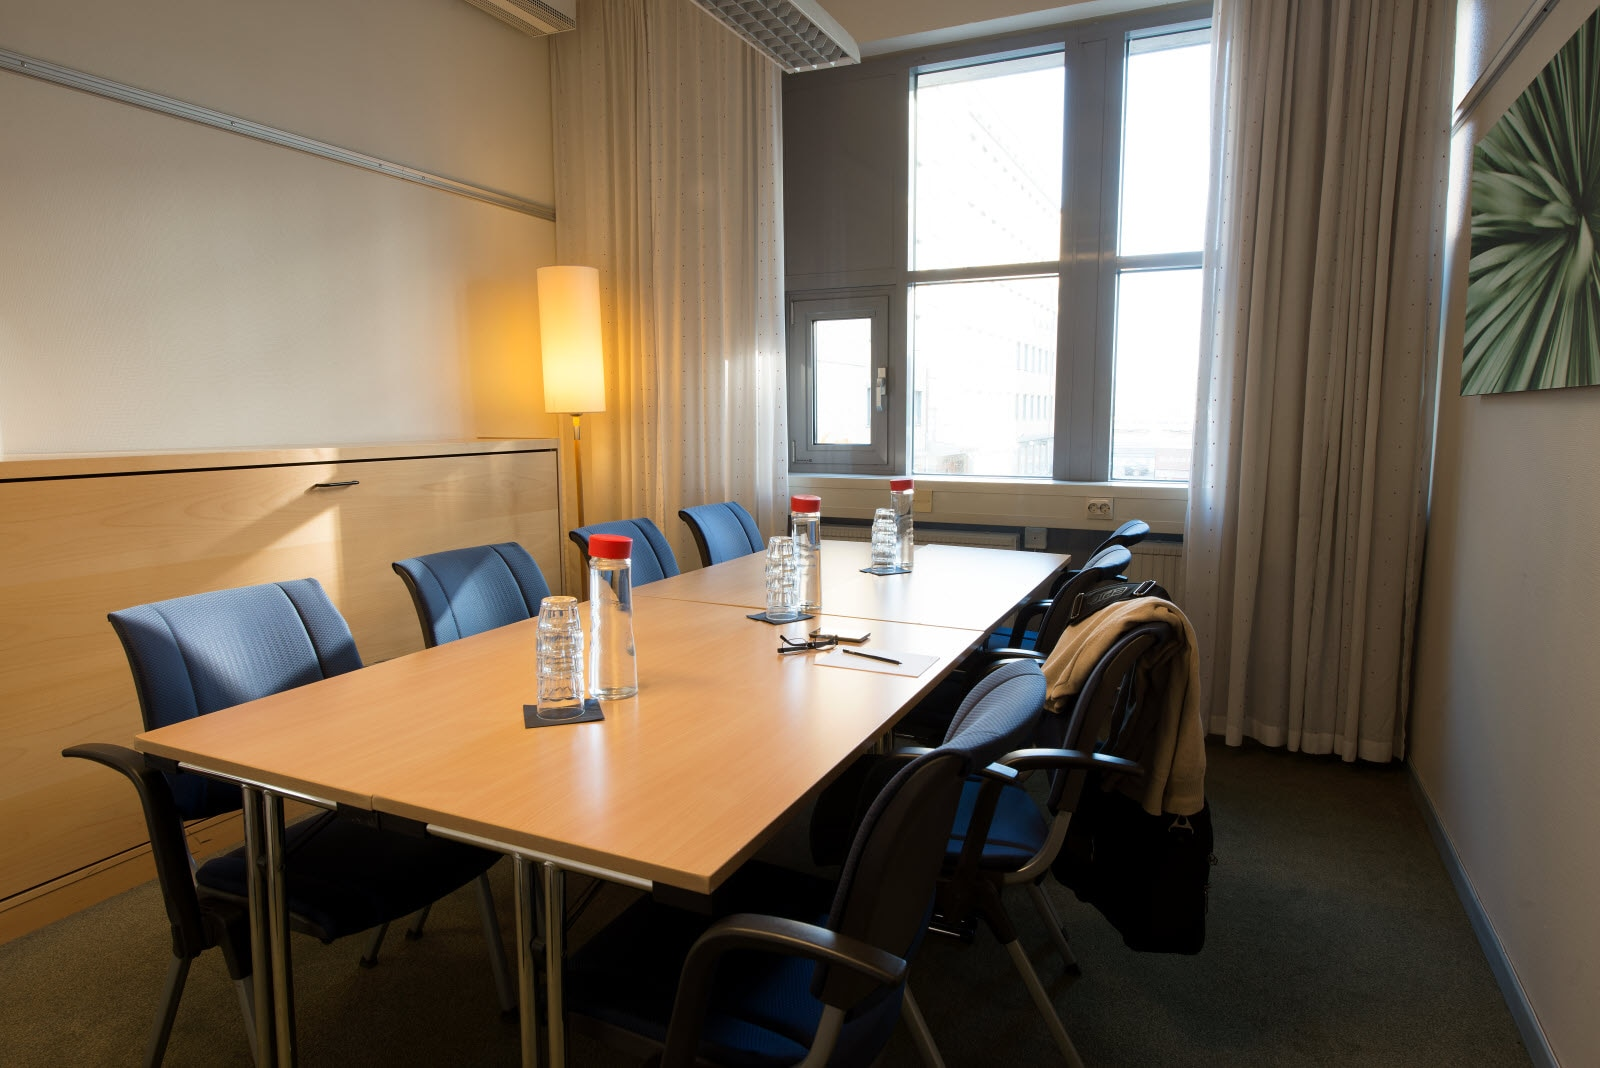 Scandic-Crown-Conference-Room-Grupprum.jpg